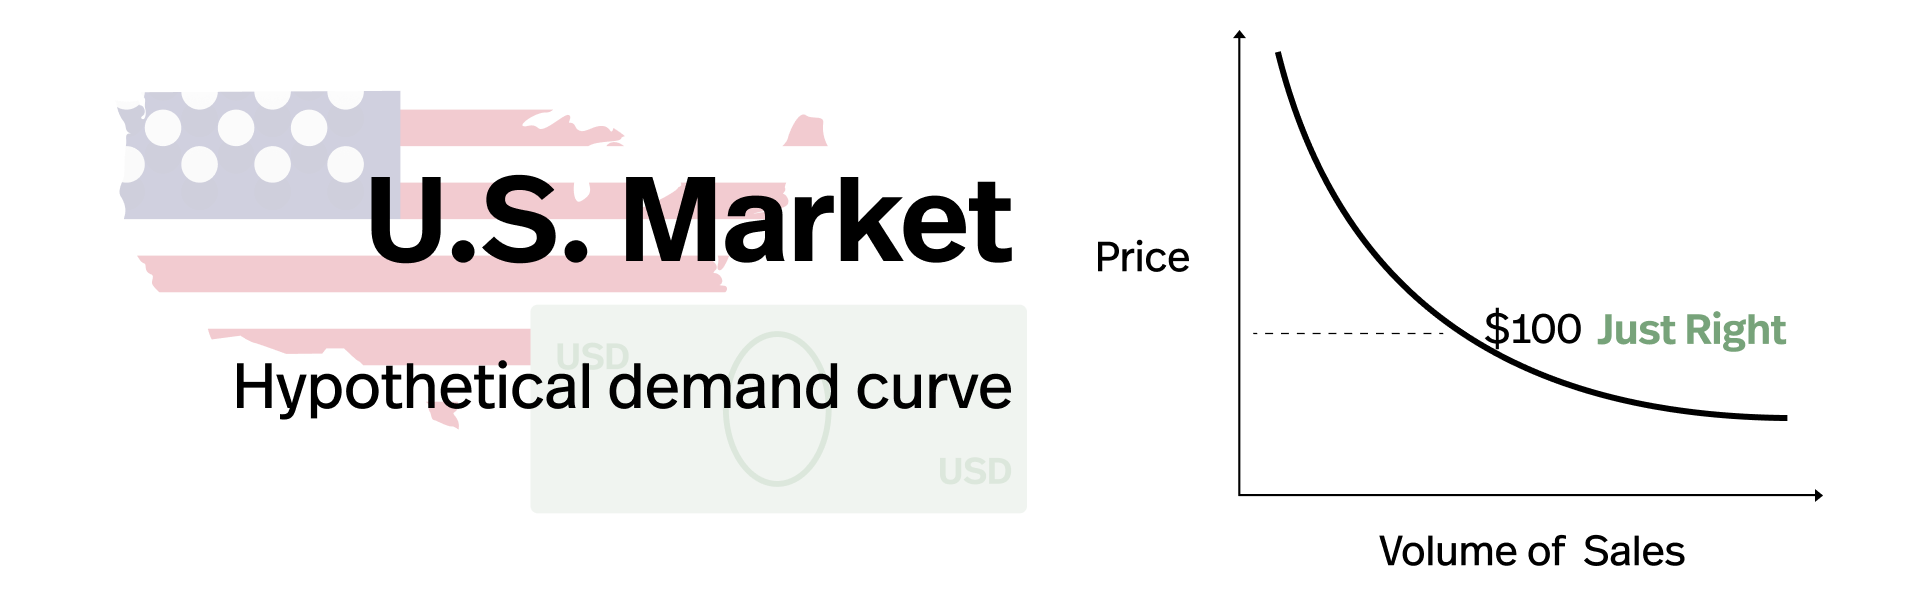 A hypothetical demand curve for a product in the US market.  This product is priced at a sweet spot in the demand curve, maximizing revenue